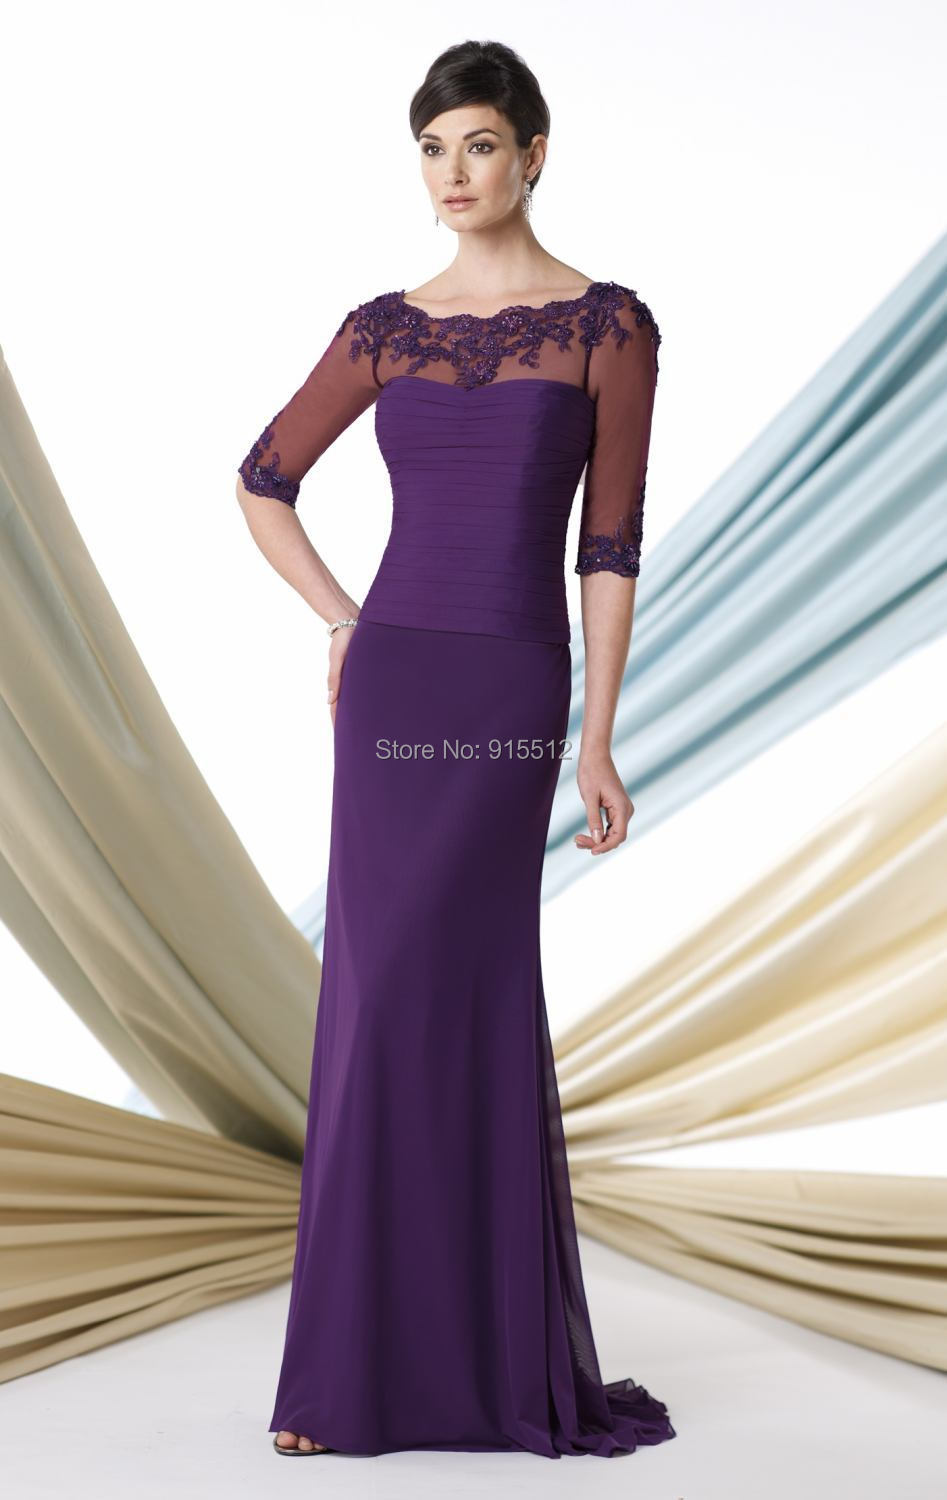 Contemporary Ebay Evening Gowns Illustration - Top Wedding Gowns ...